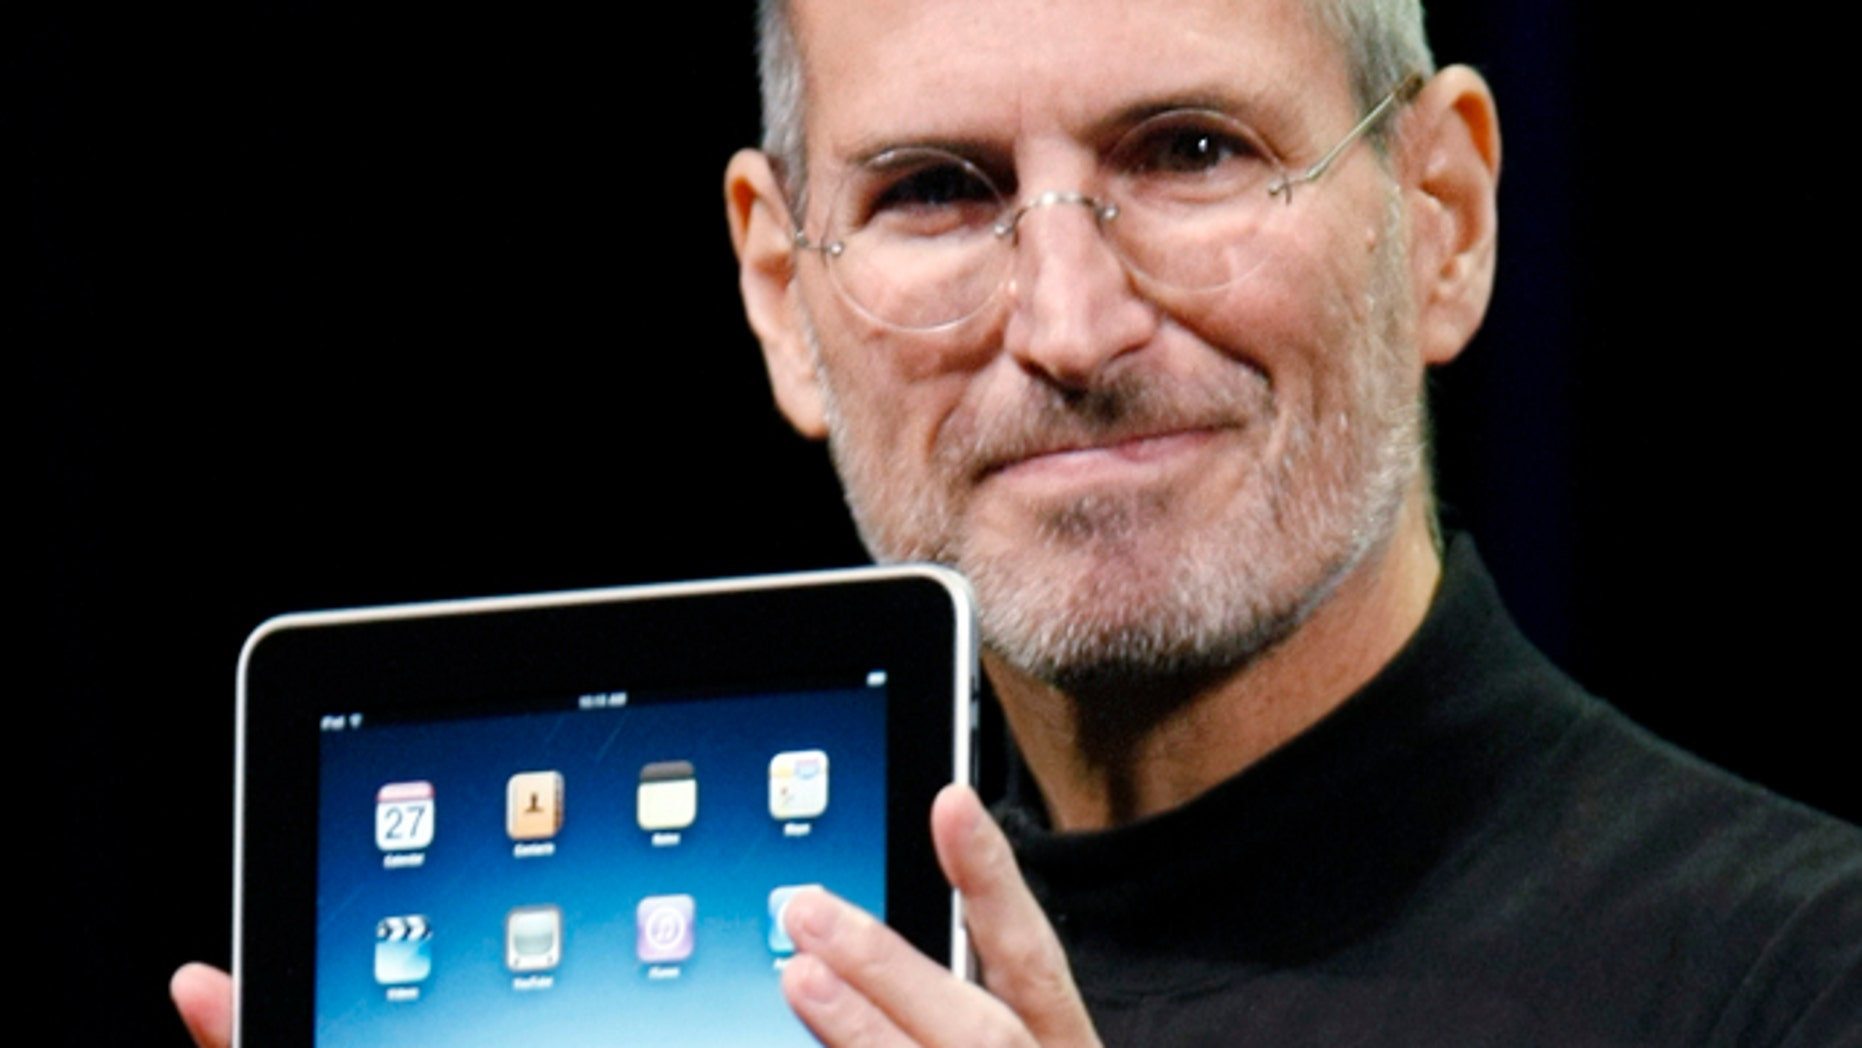 Jan. 27, 2010: Apple CEO Steve Jobs holds the new iPad during a product announcement in San Francisco.